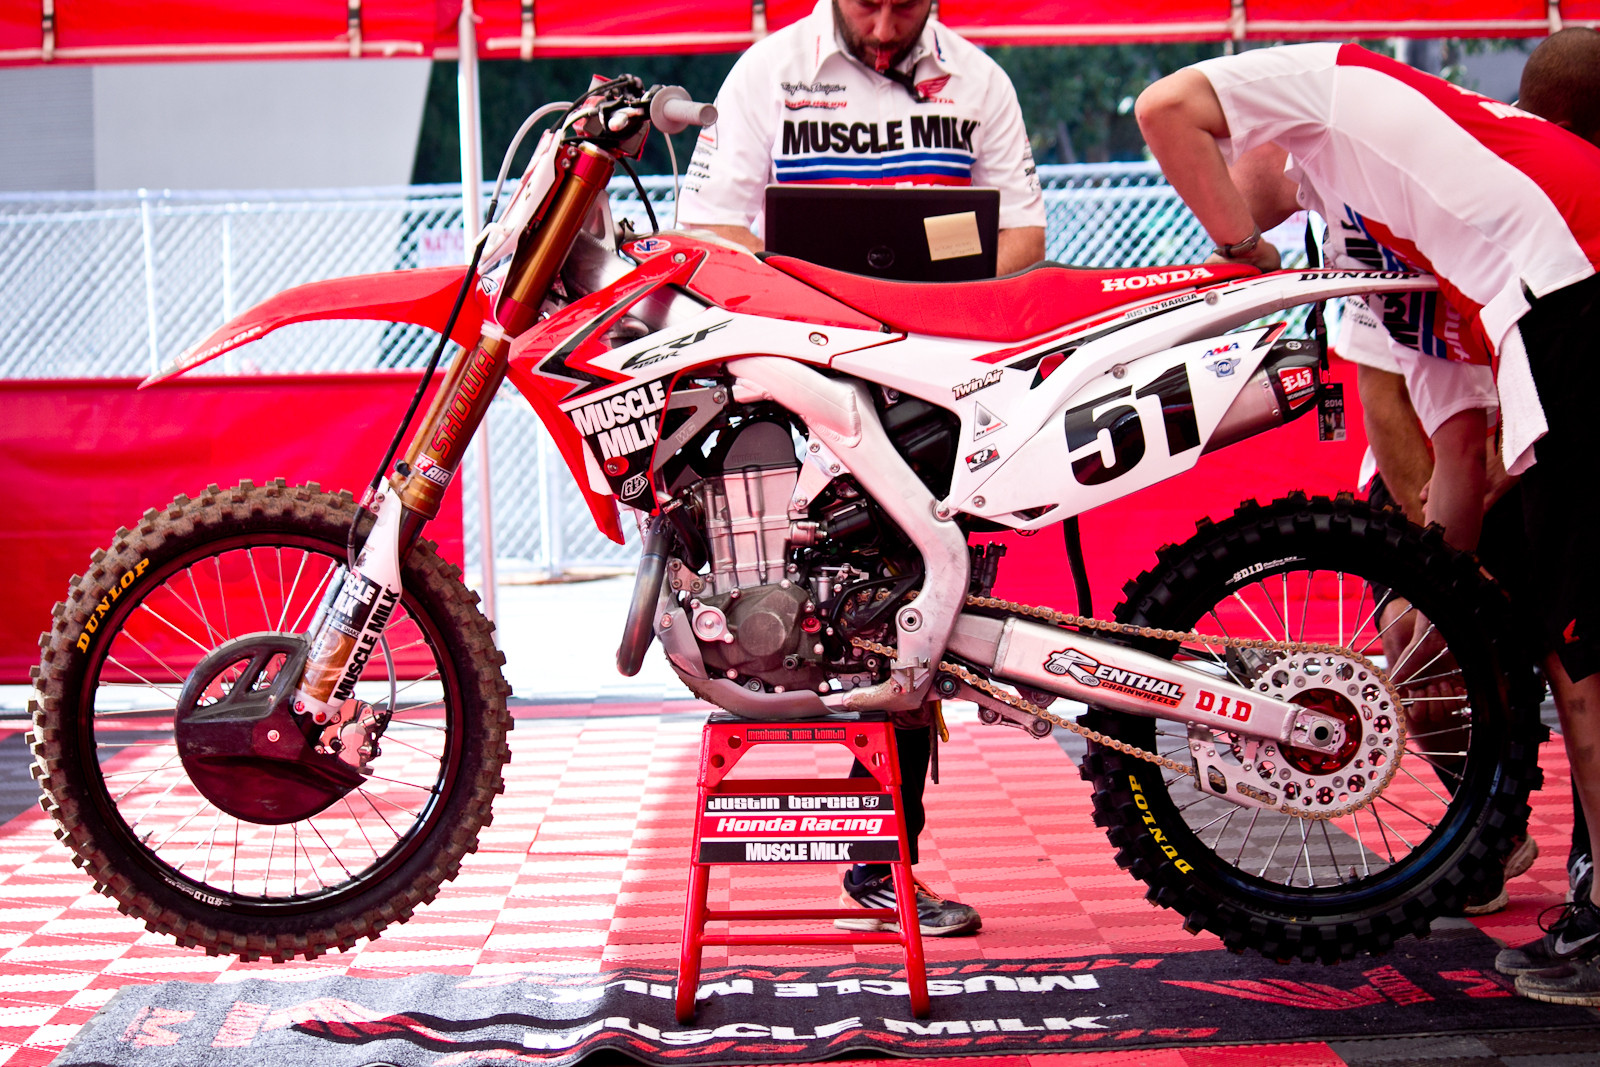 What the Motocross Pros Ride: Justin Barcia's Other Ride - What the Motocross Pros Ride - Mountain Biking Pictures - Vital MTB